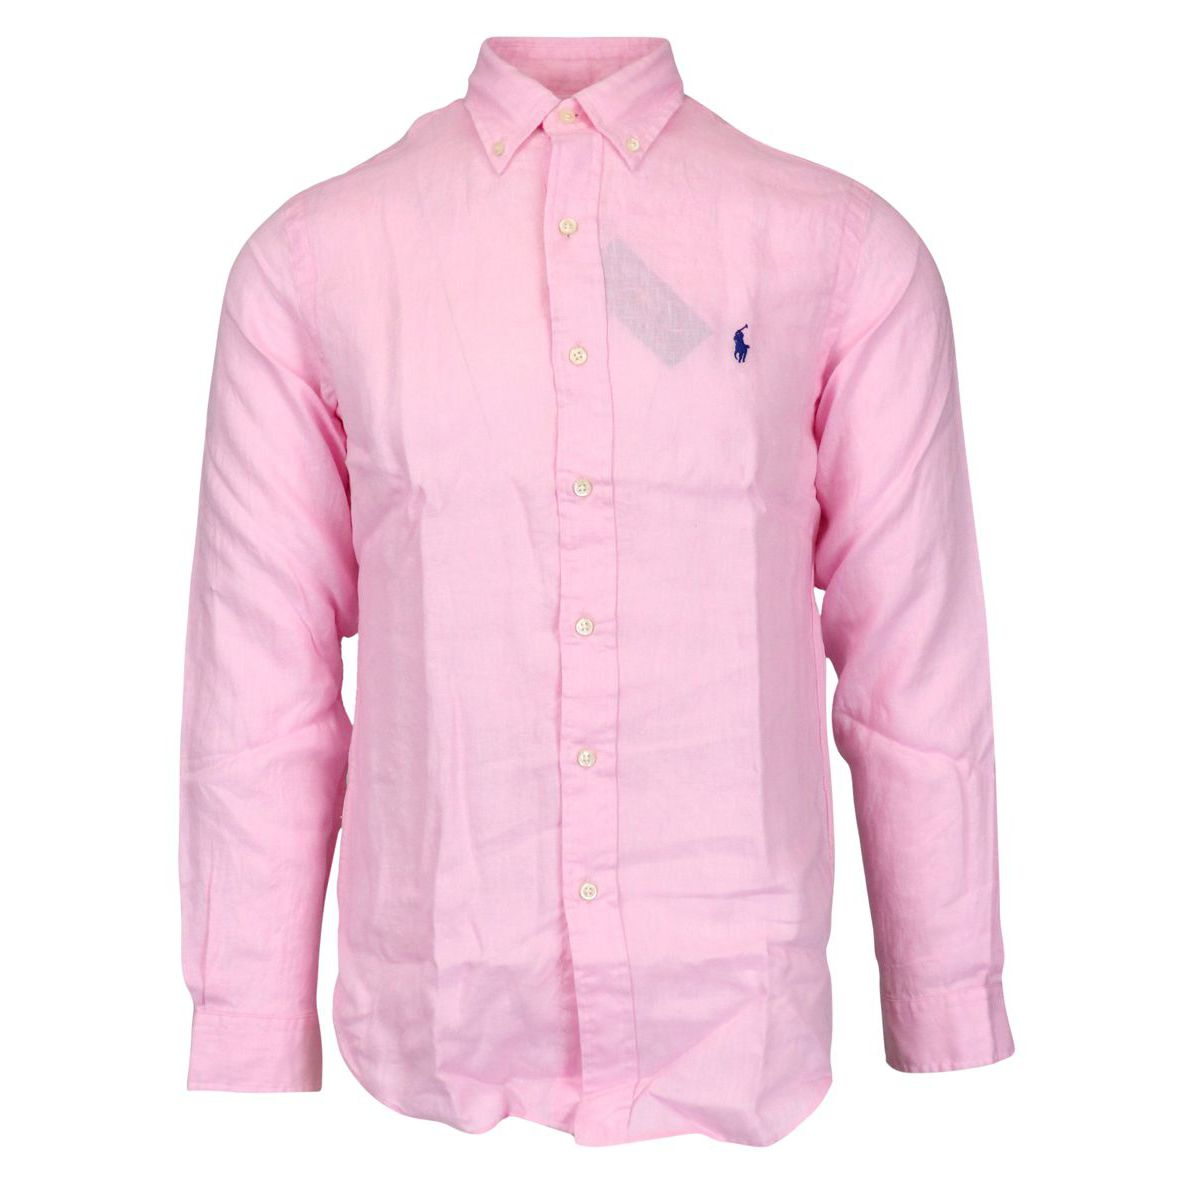 Custom-fit button-down linen shirt Rose Polo Ralph Lauren